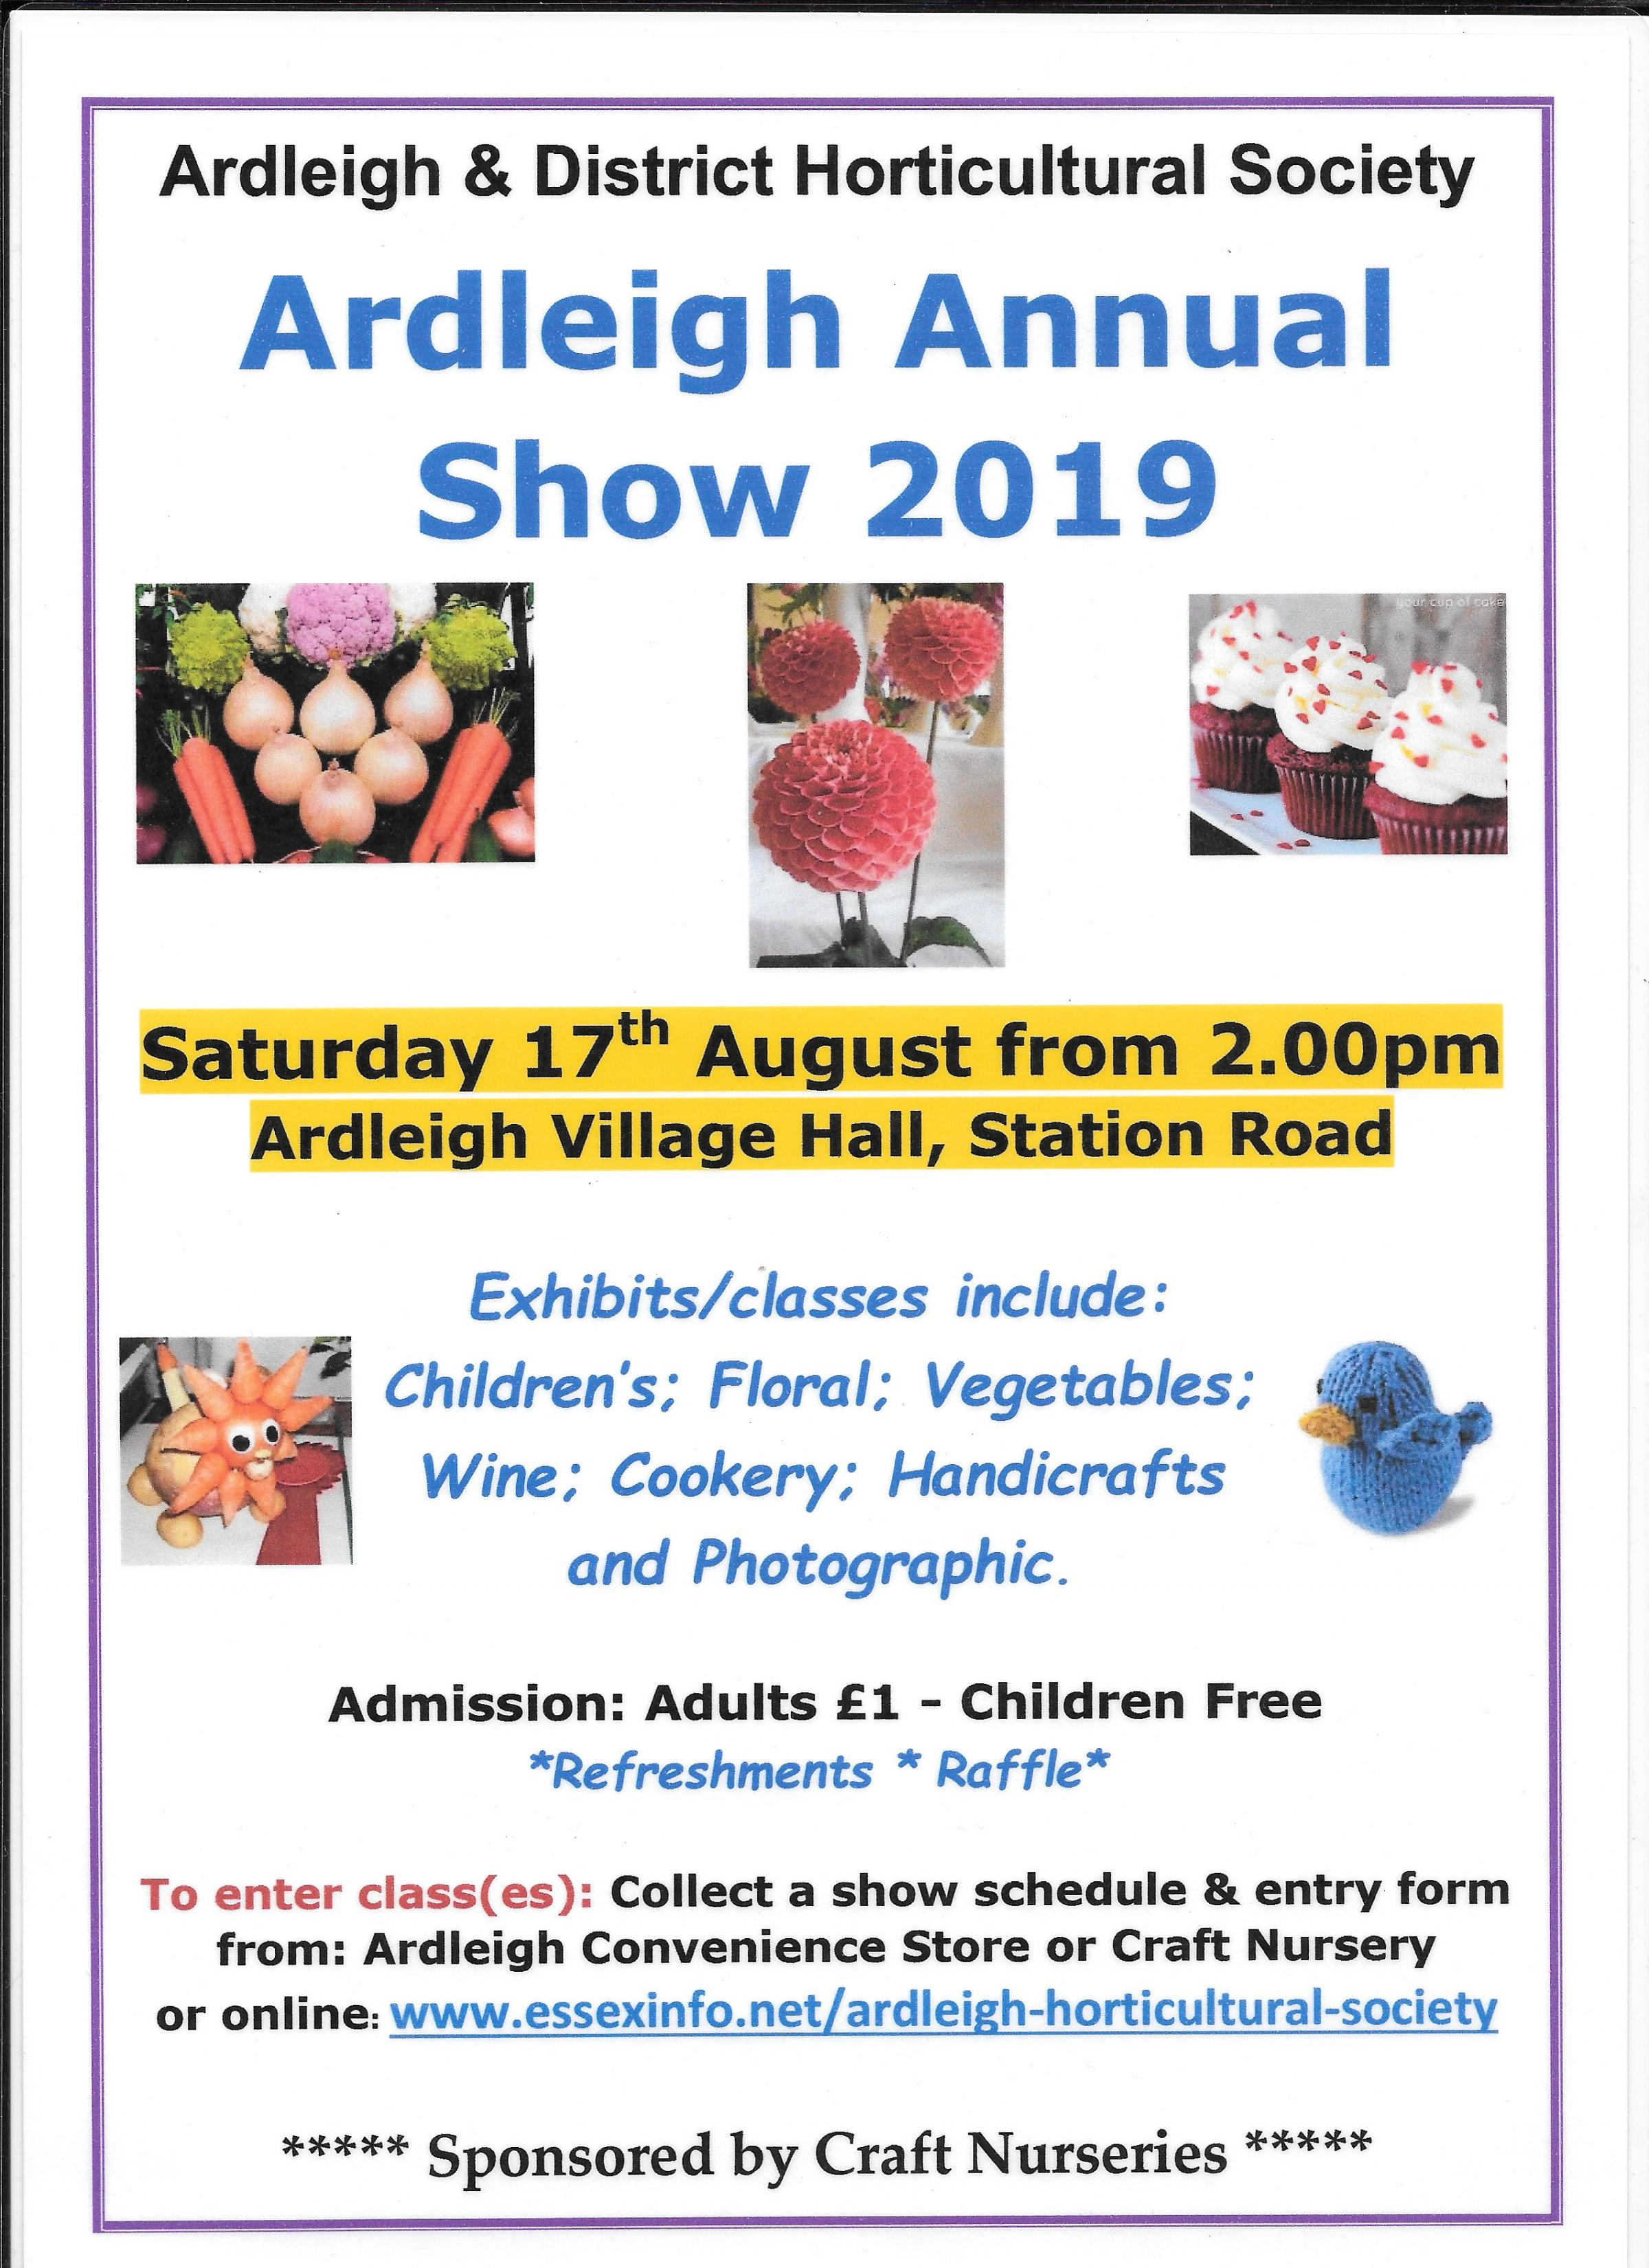 Ardleigh & District Horticultural Society Annual Show